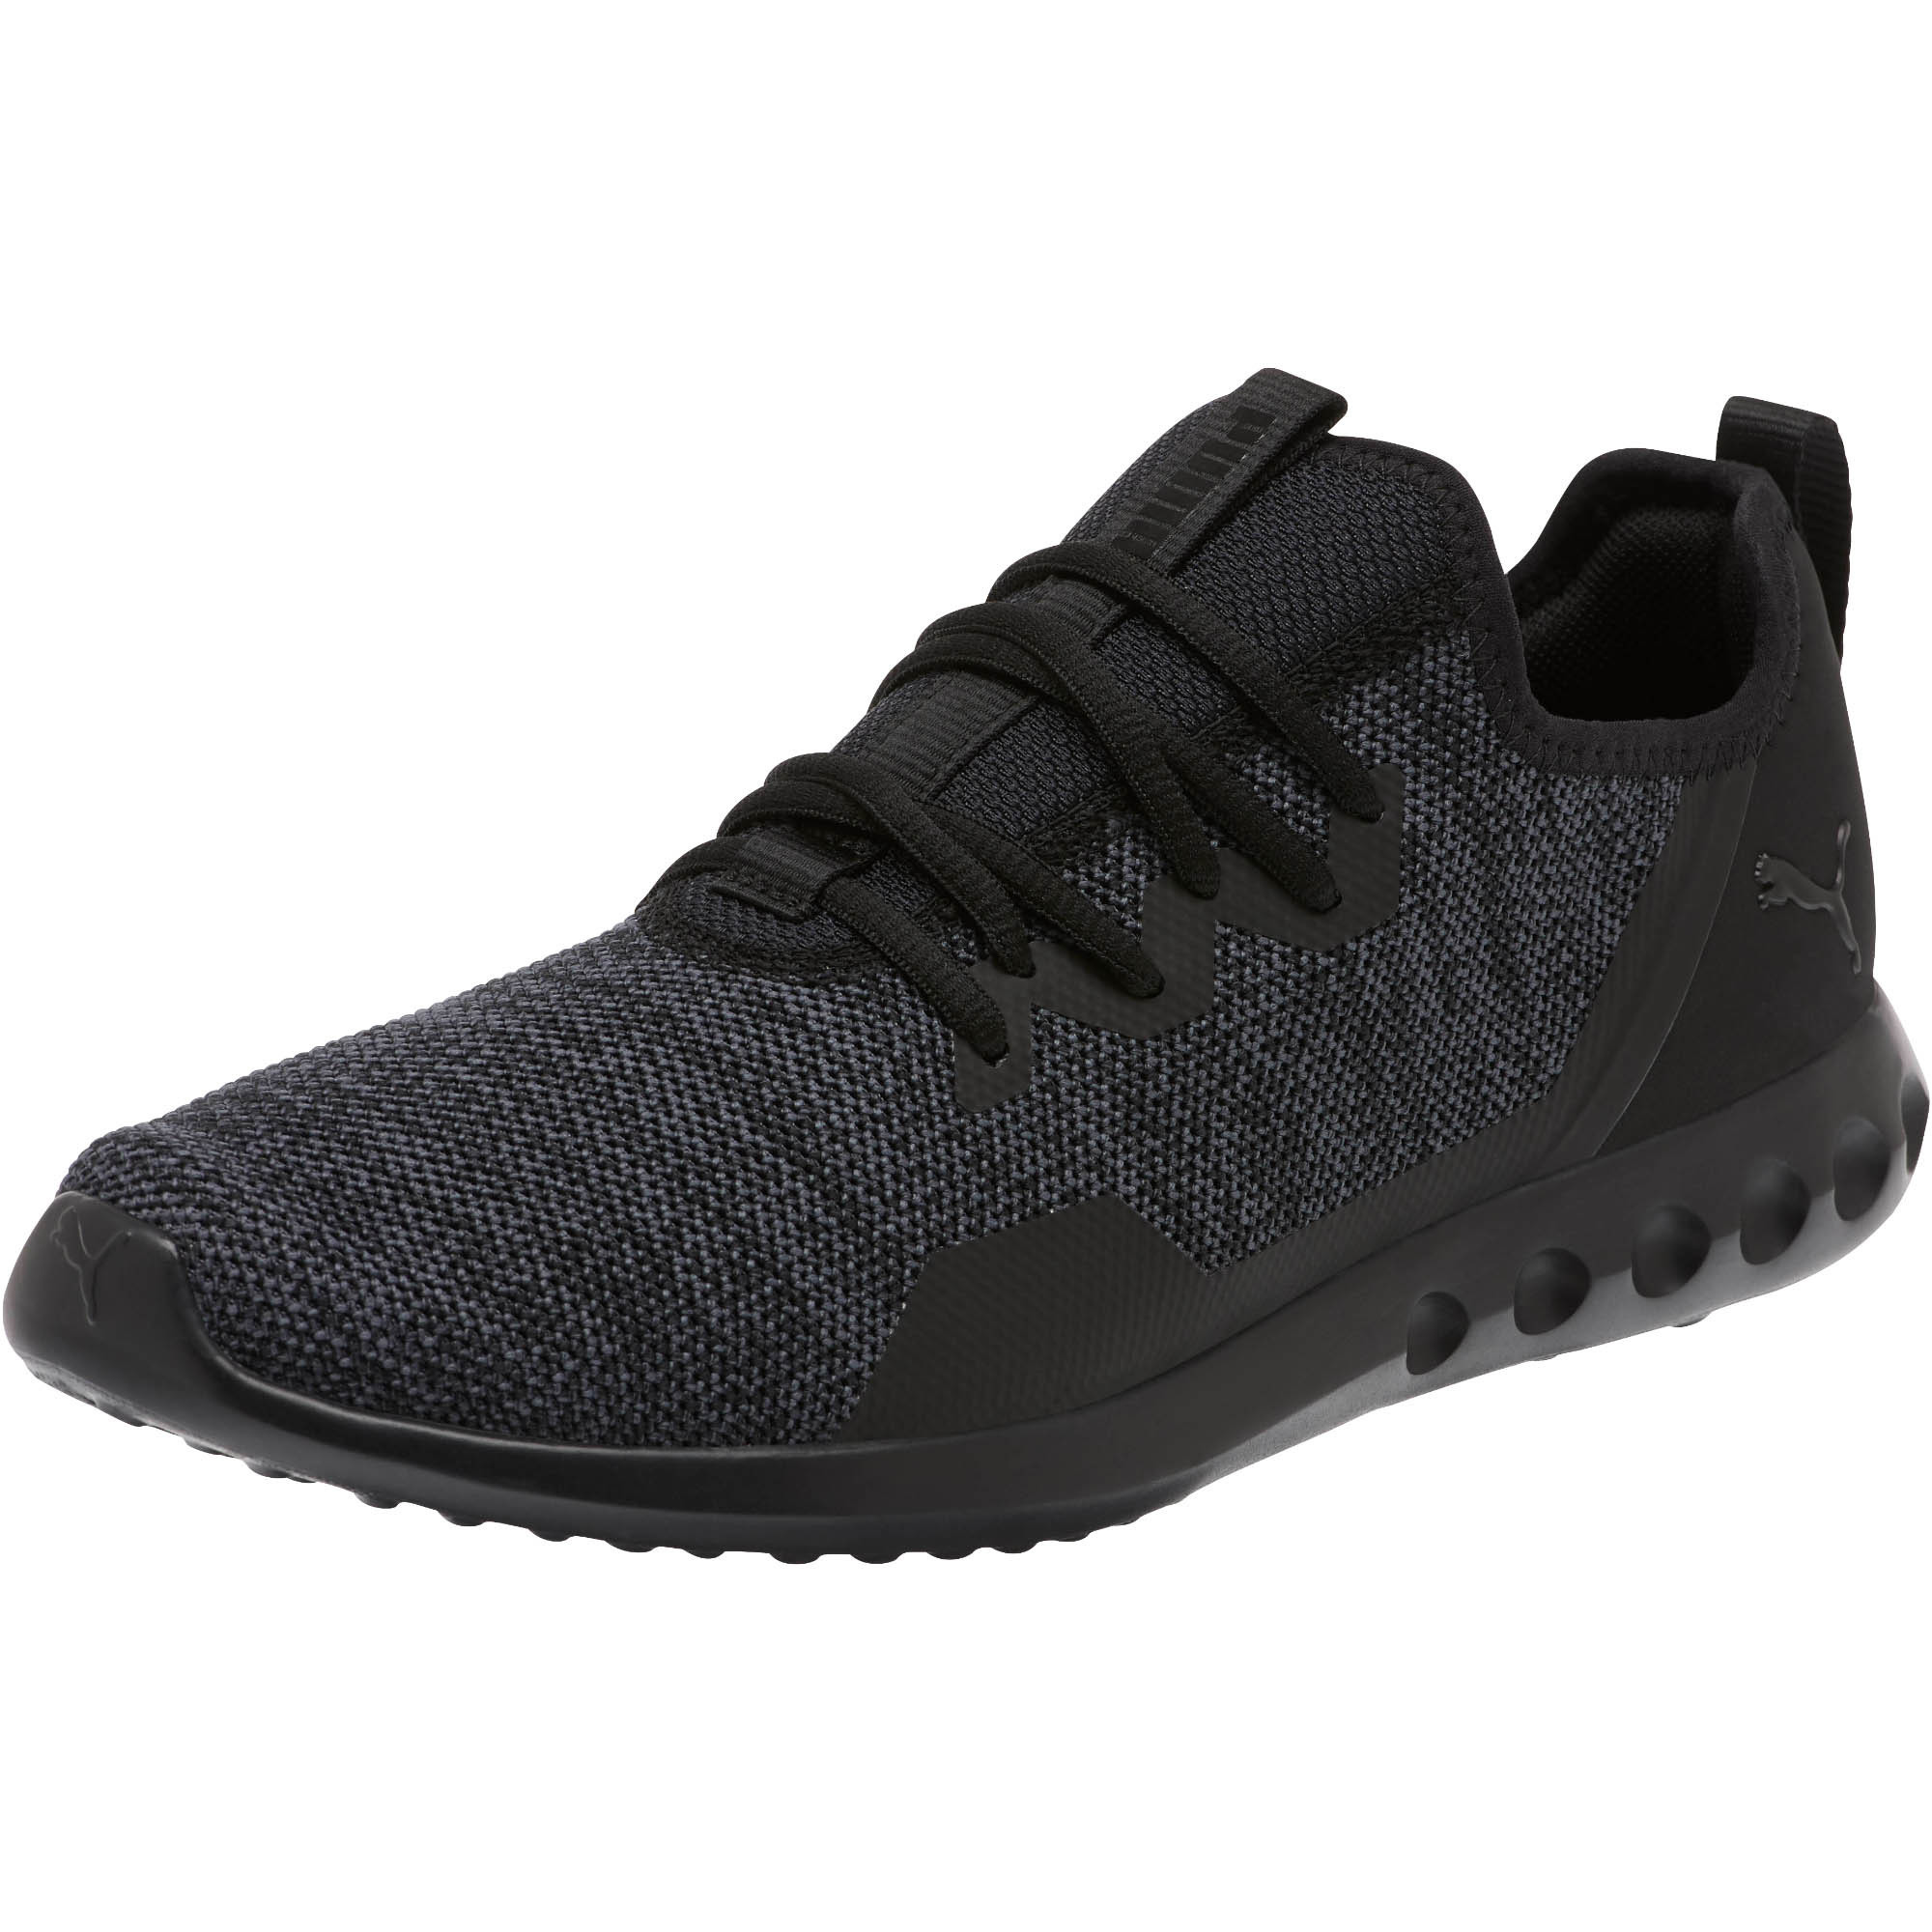 PUMA-Carson-2-X-Knit-Men-039-s-Running-Shoes-Men-Shoe-Running thumbnail 30